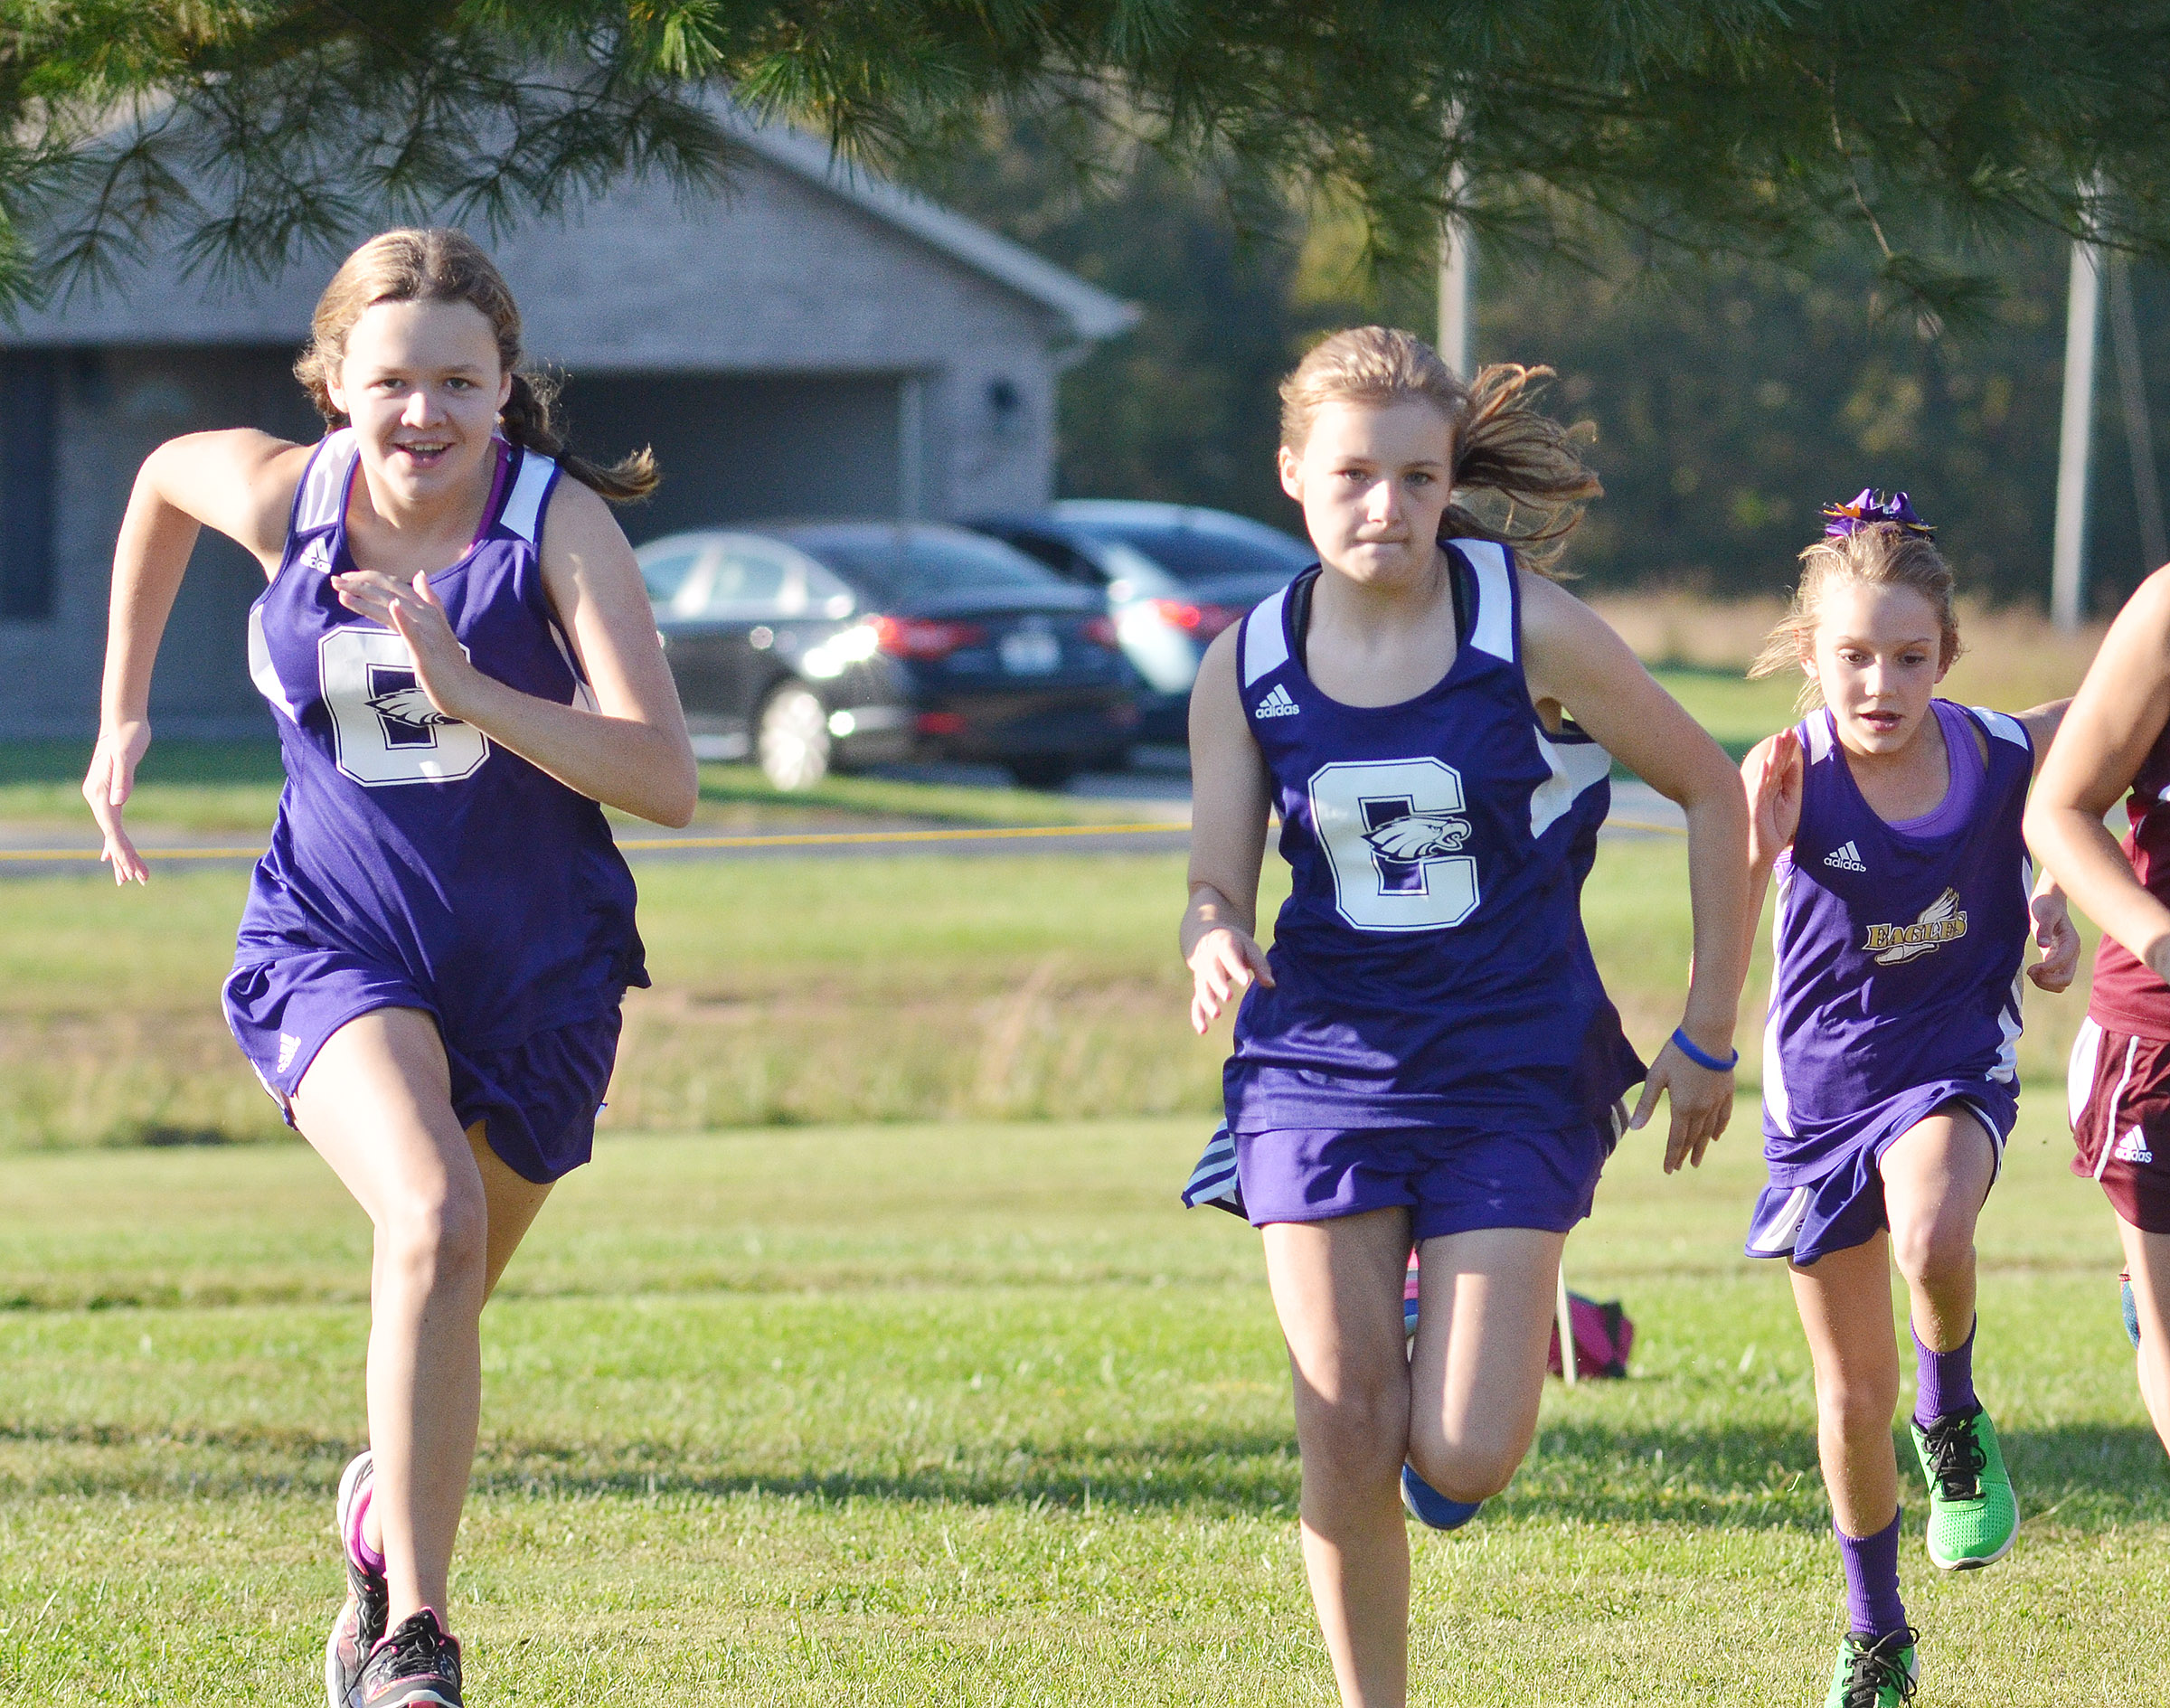 From left, CMS seventh-grader MaCayla Falls, eighth-grader Serenity Ford and CES third-grader Baylee Pike run.